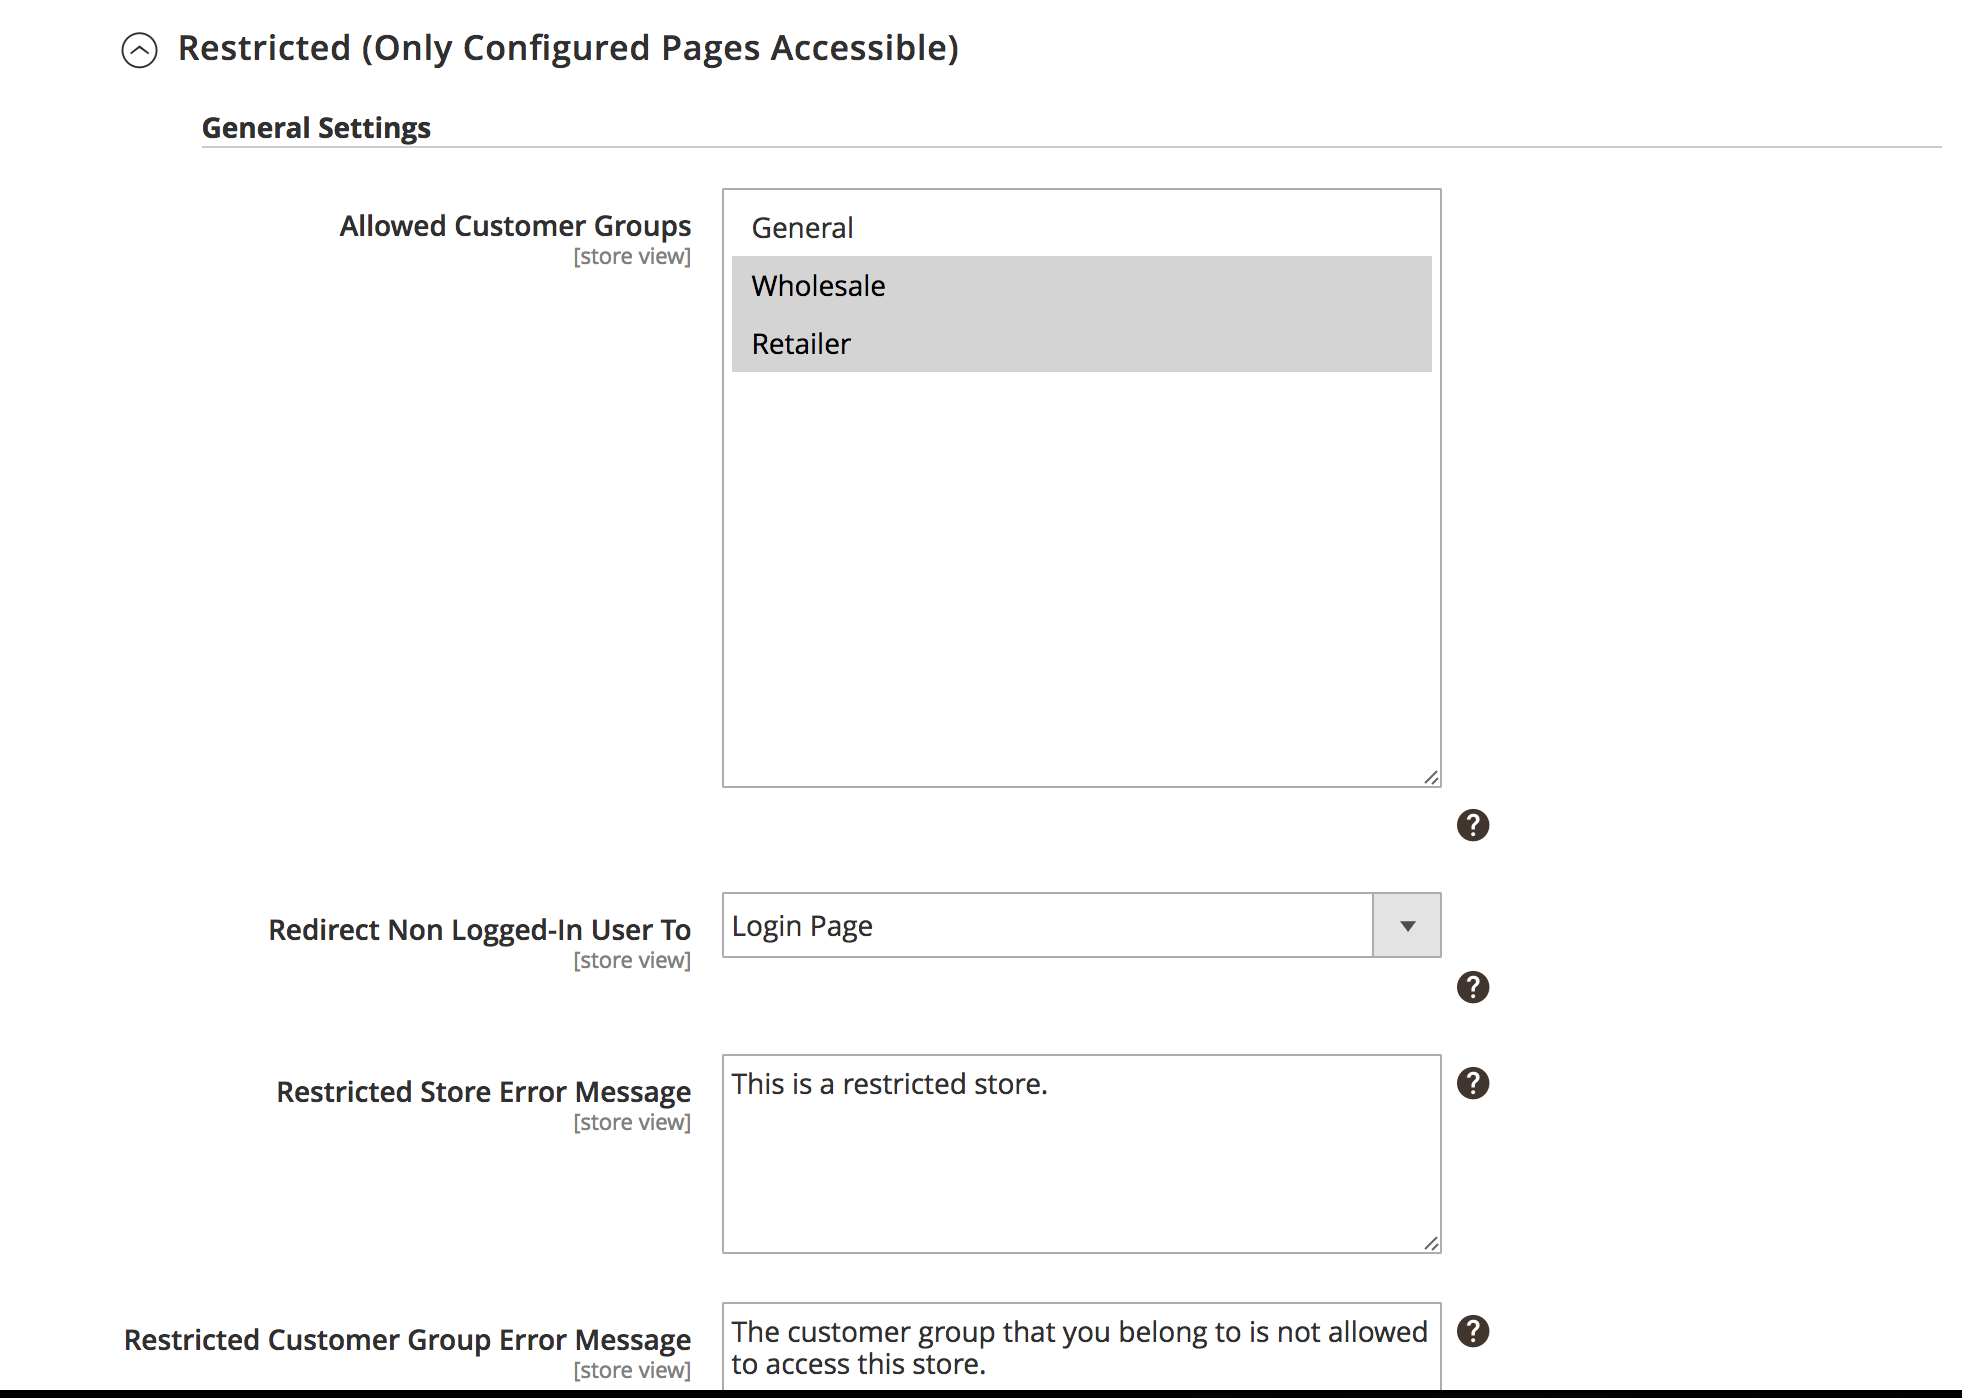 Restriction Type: Restricted (Only configured pages accessible)